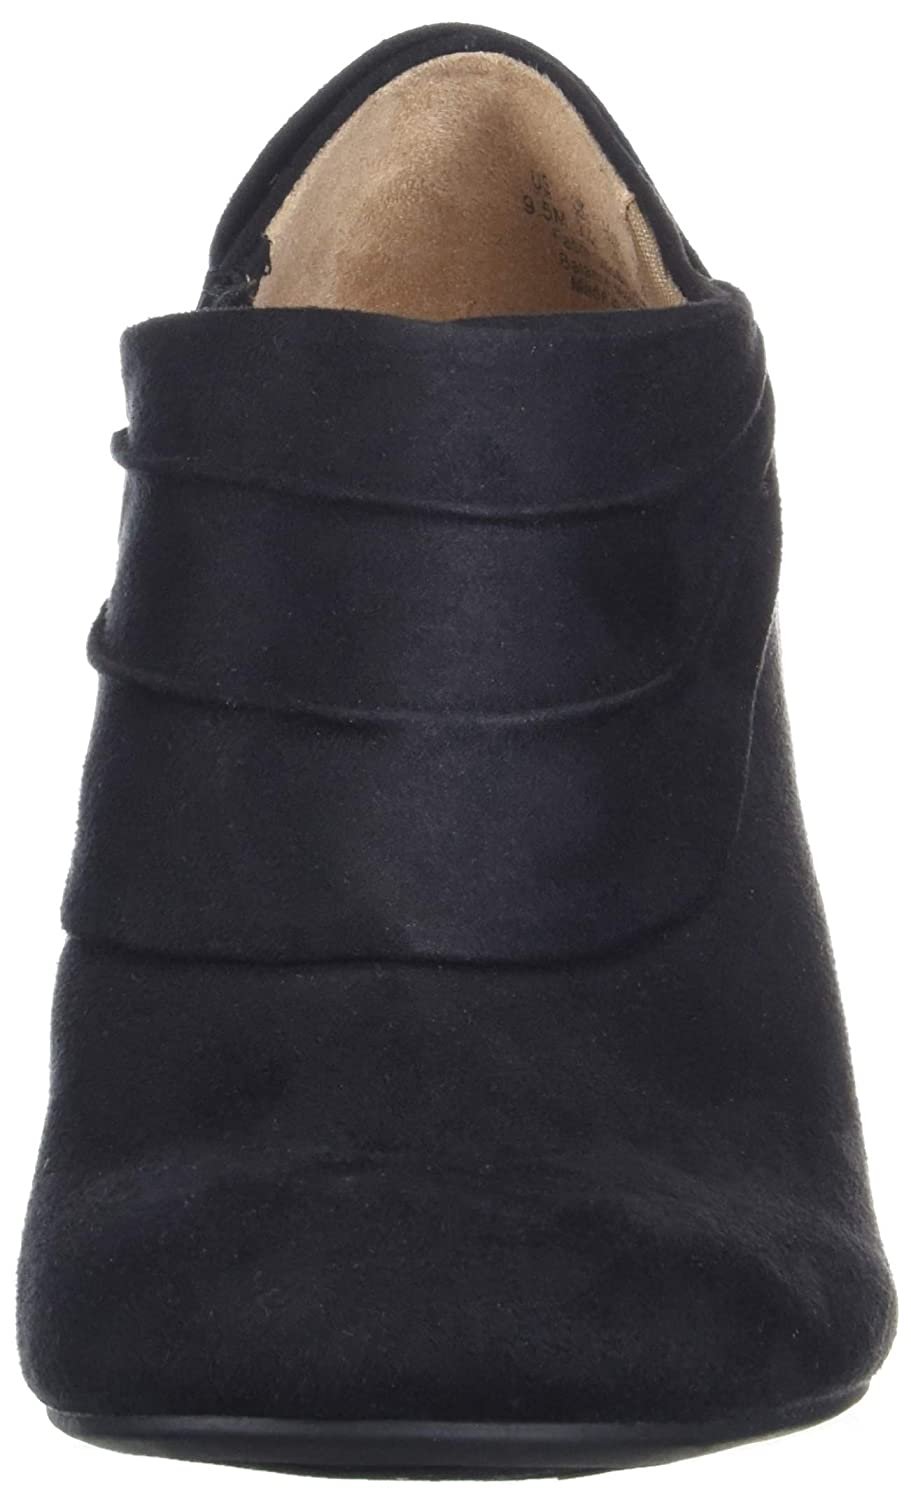 LifeStride Womens Corie Ankle Boot